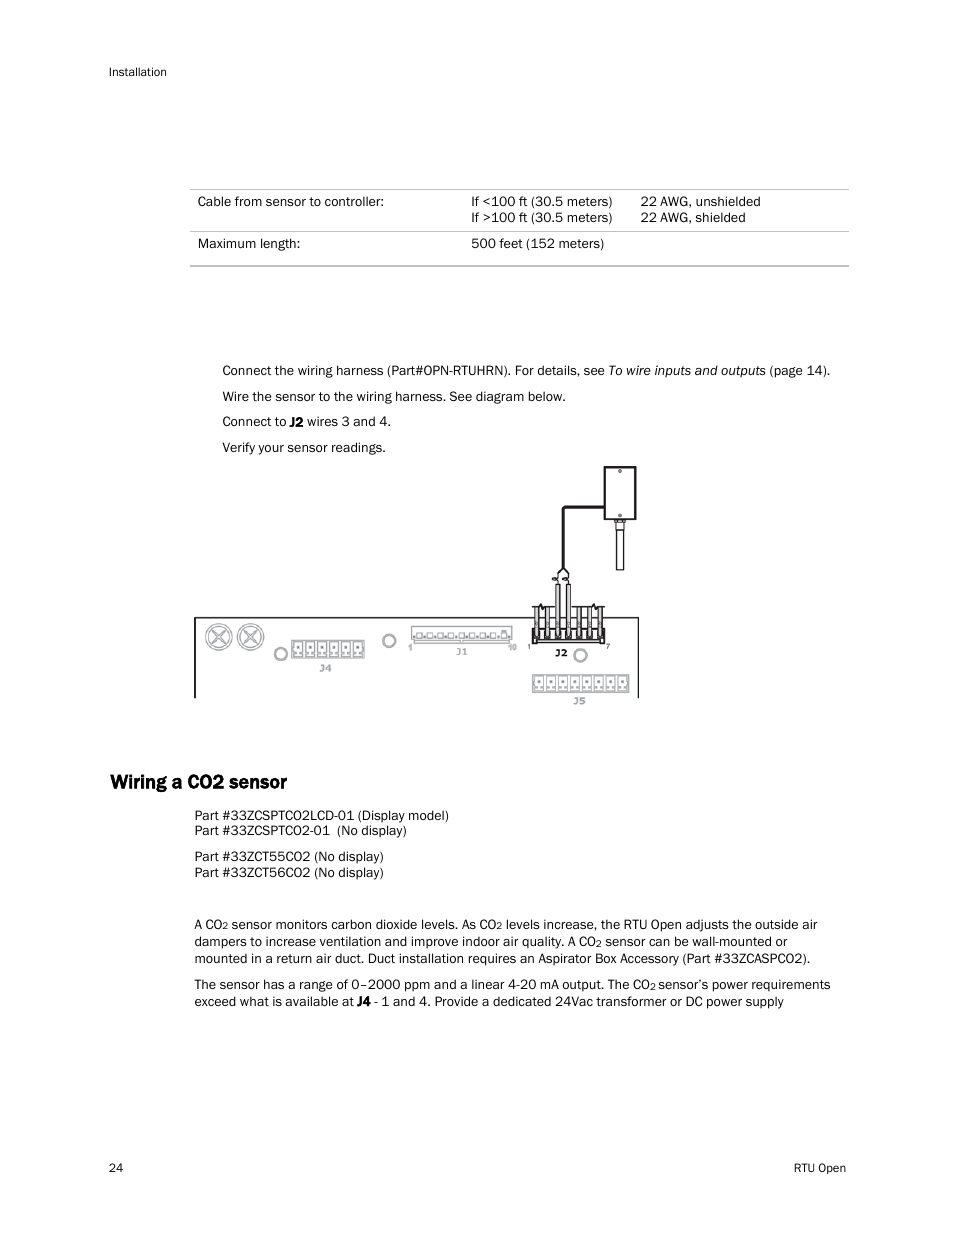 Wiring Specifications To Wire An Oat Sensor The Controller Shielded Harness A Co2 Carrier Rtu Open 11 808 427 01 User Manual Page 30 88